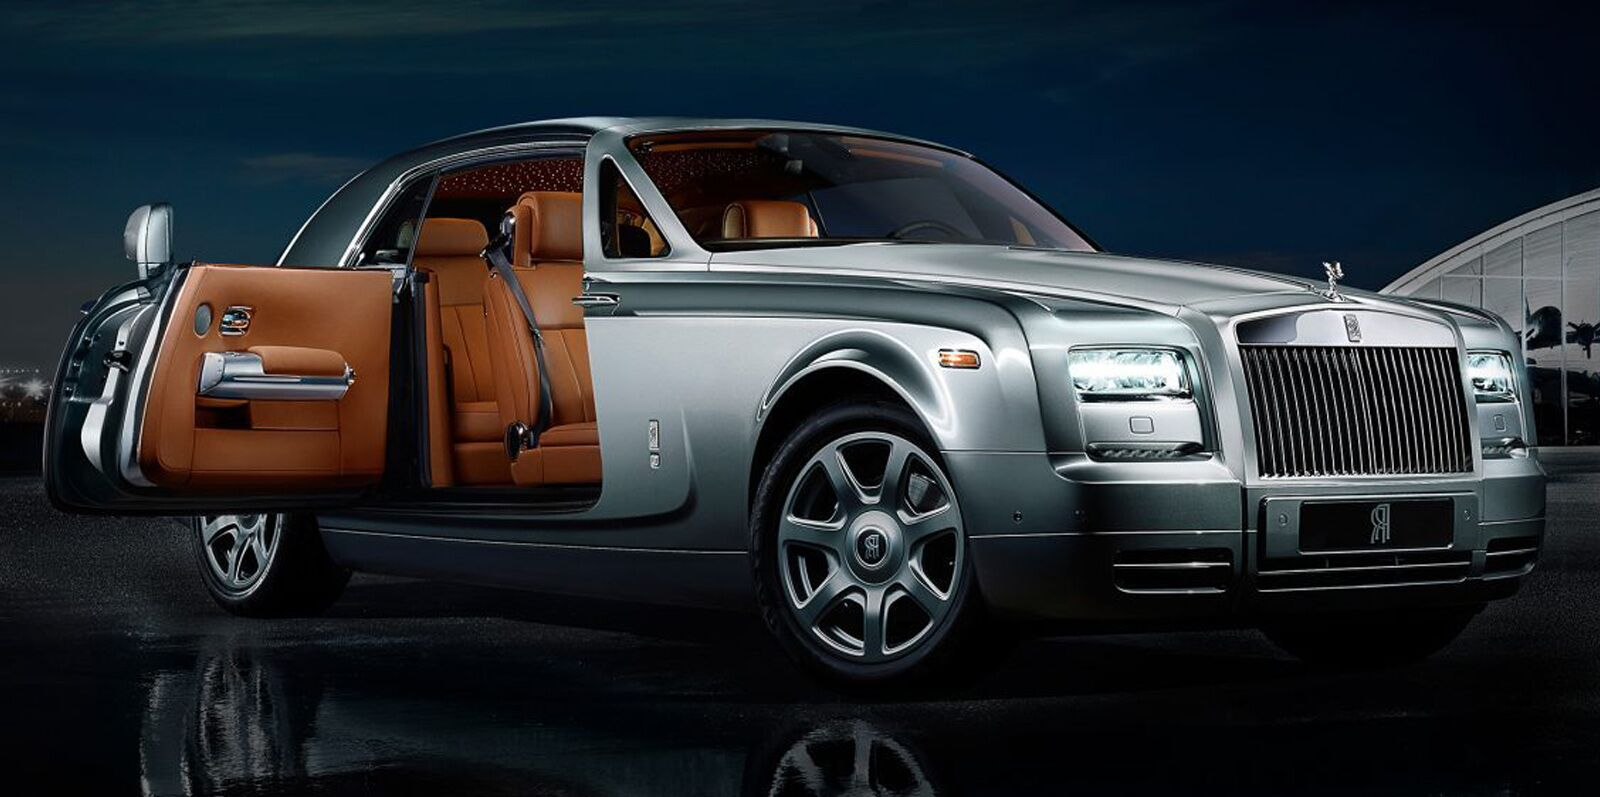 Rolls-Royce Phantom l Lease or Purchase at Rolls-Royce ...